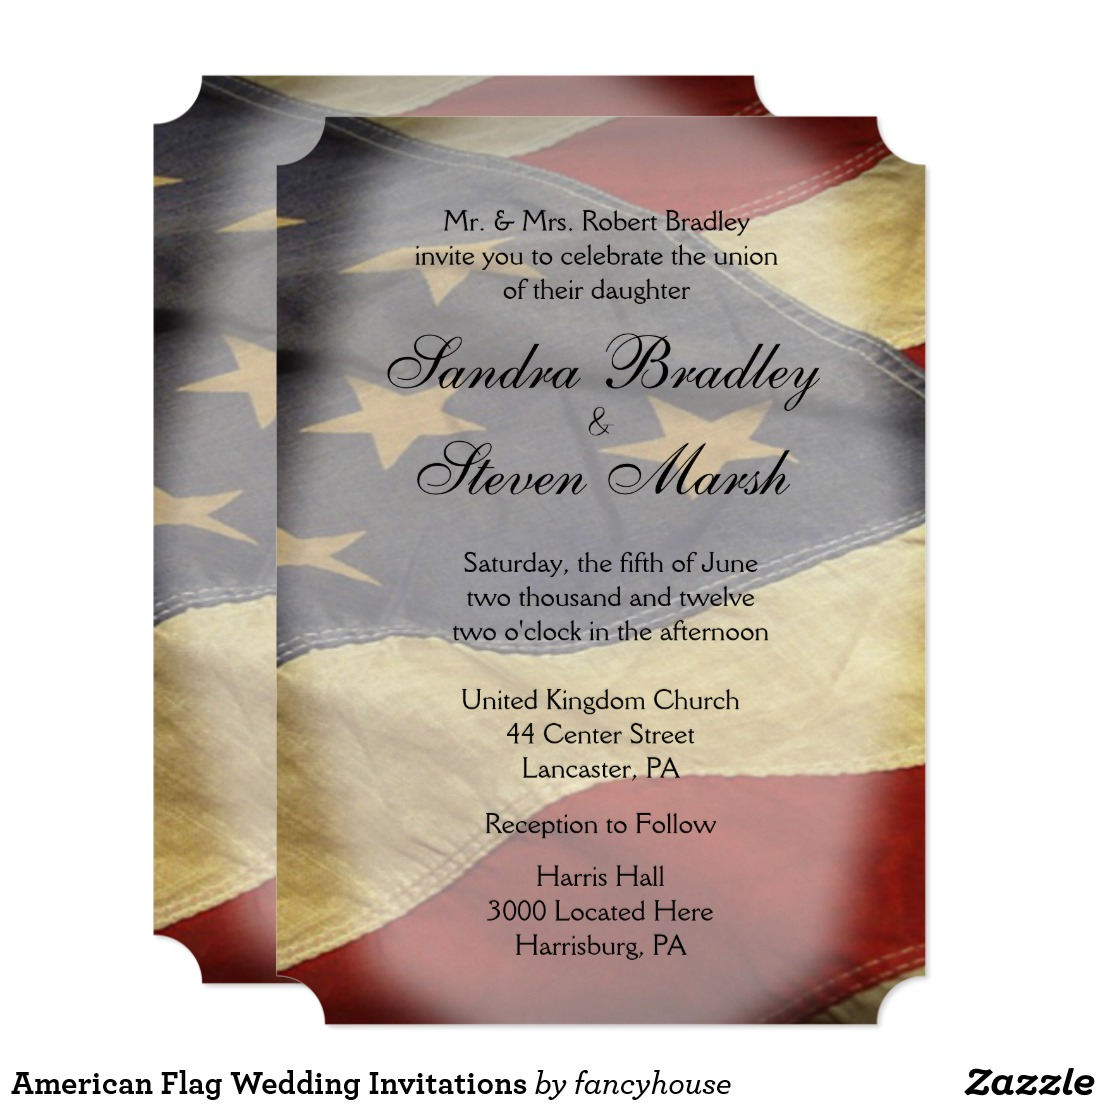 American Flag Wedding Invitations